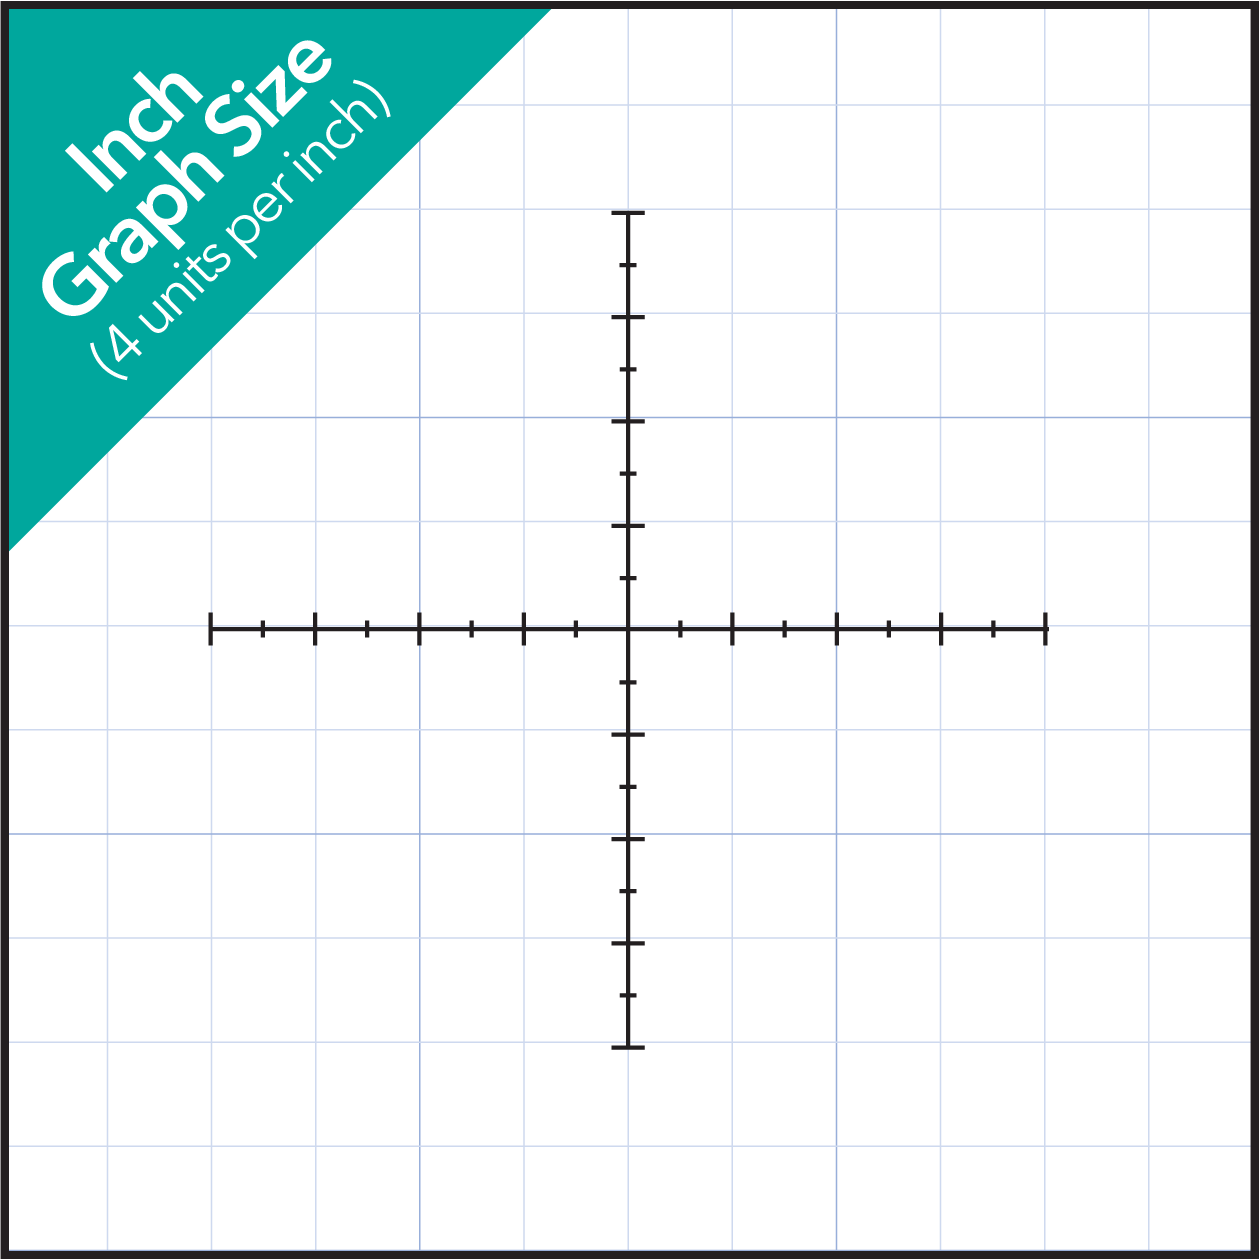 worksheet Graph Paper With X And Y Axis amazon com coordimate self inking xy graph stamp clear and red view larger